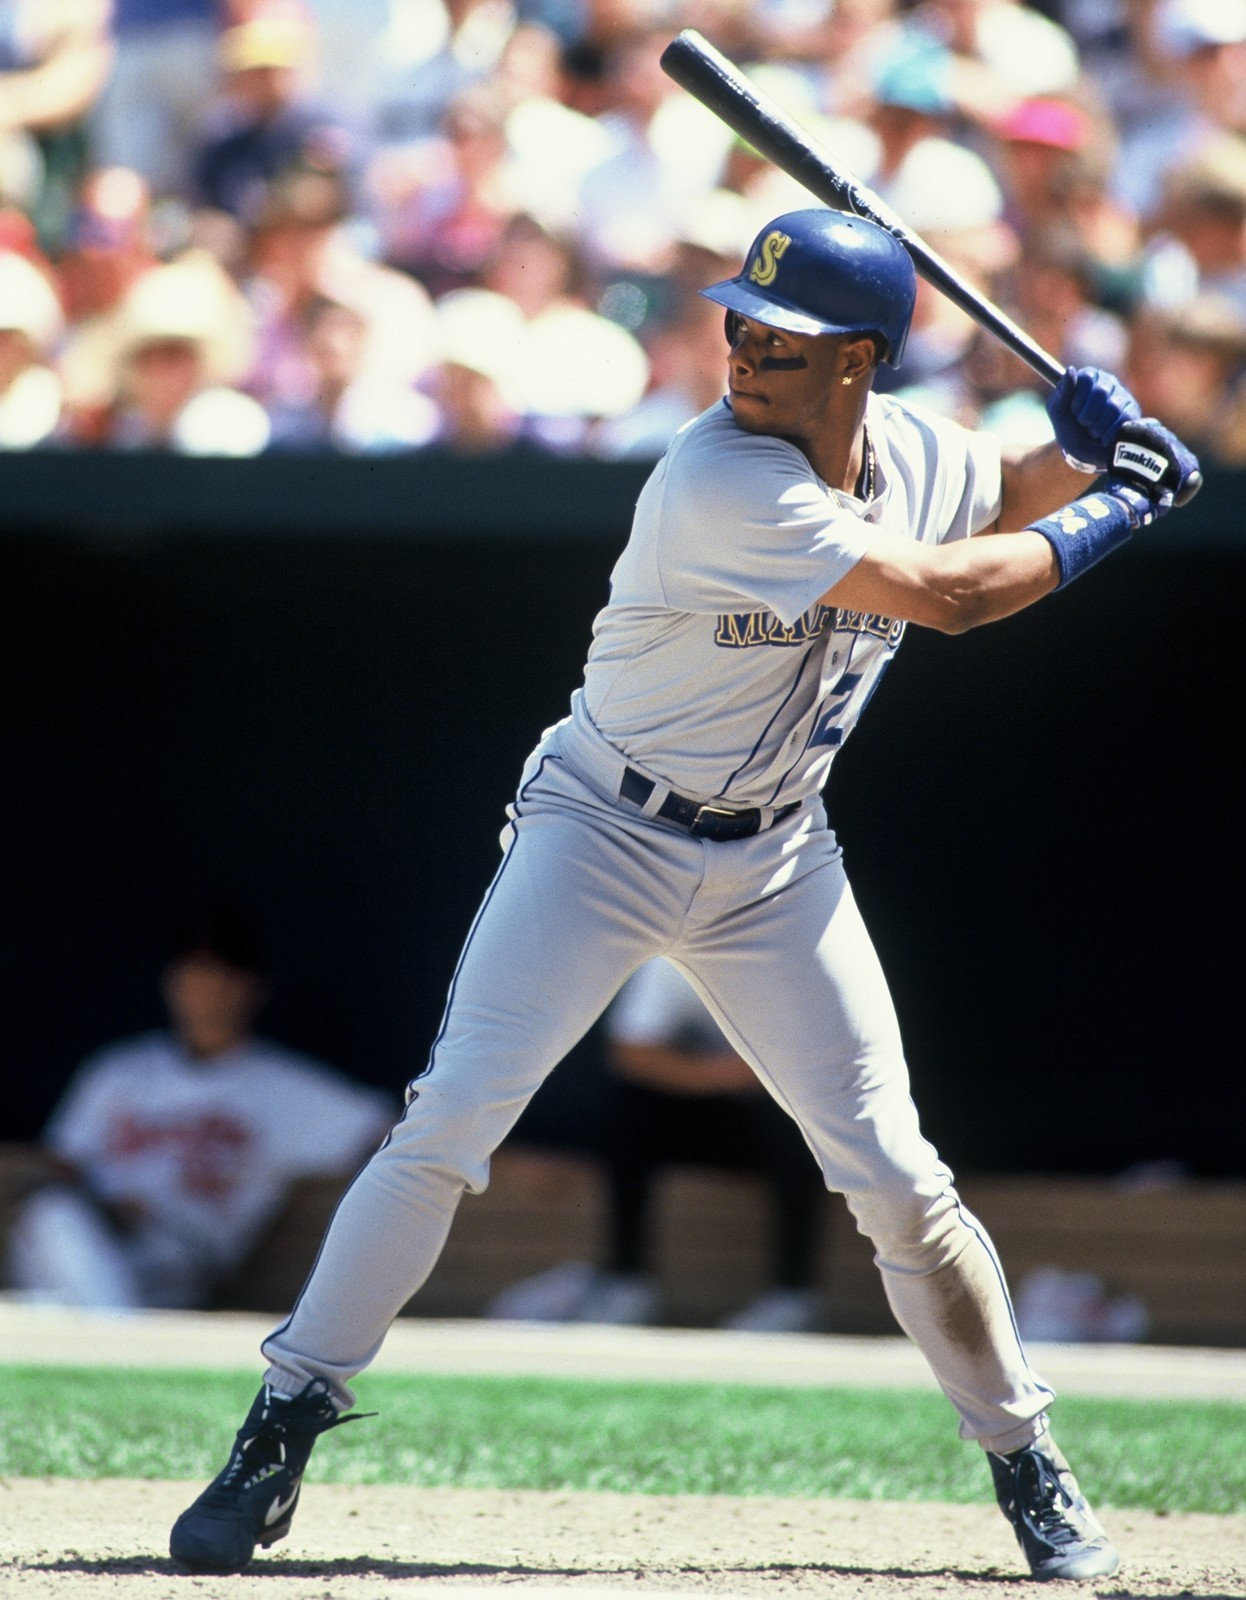 Ken Griffey Jr Was So Close To Getting Entry Into The ...